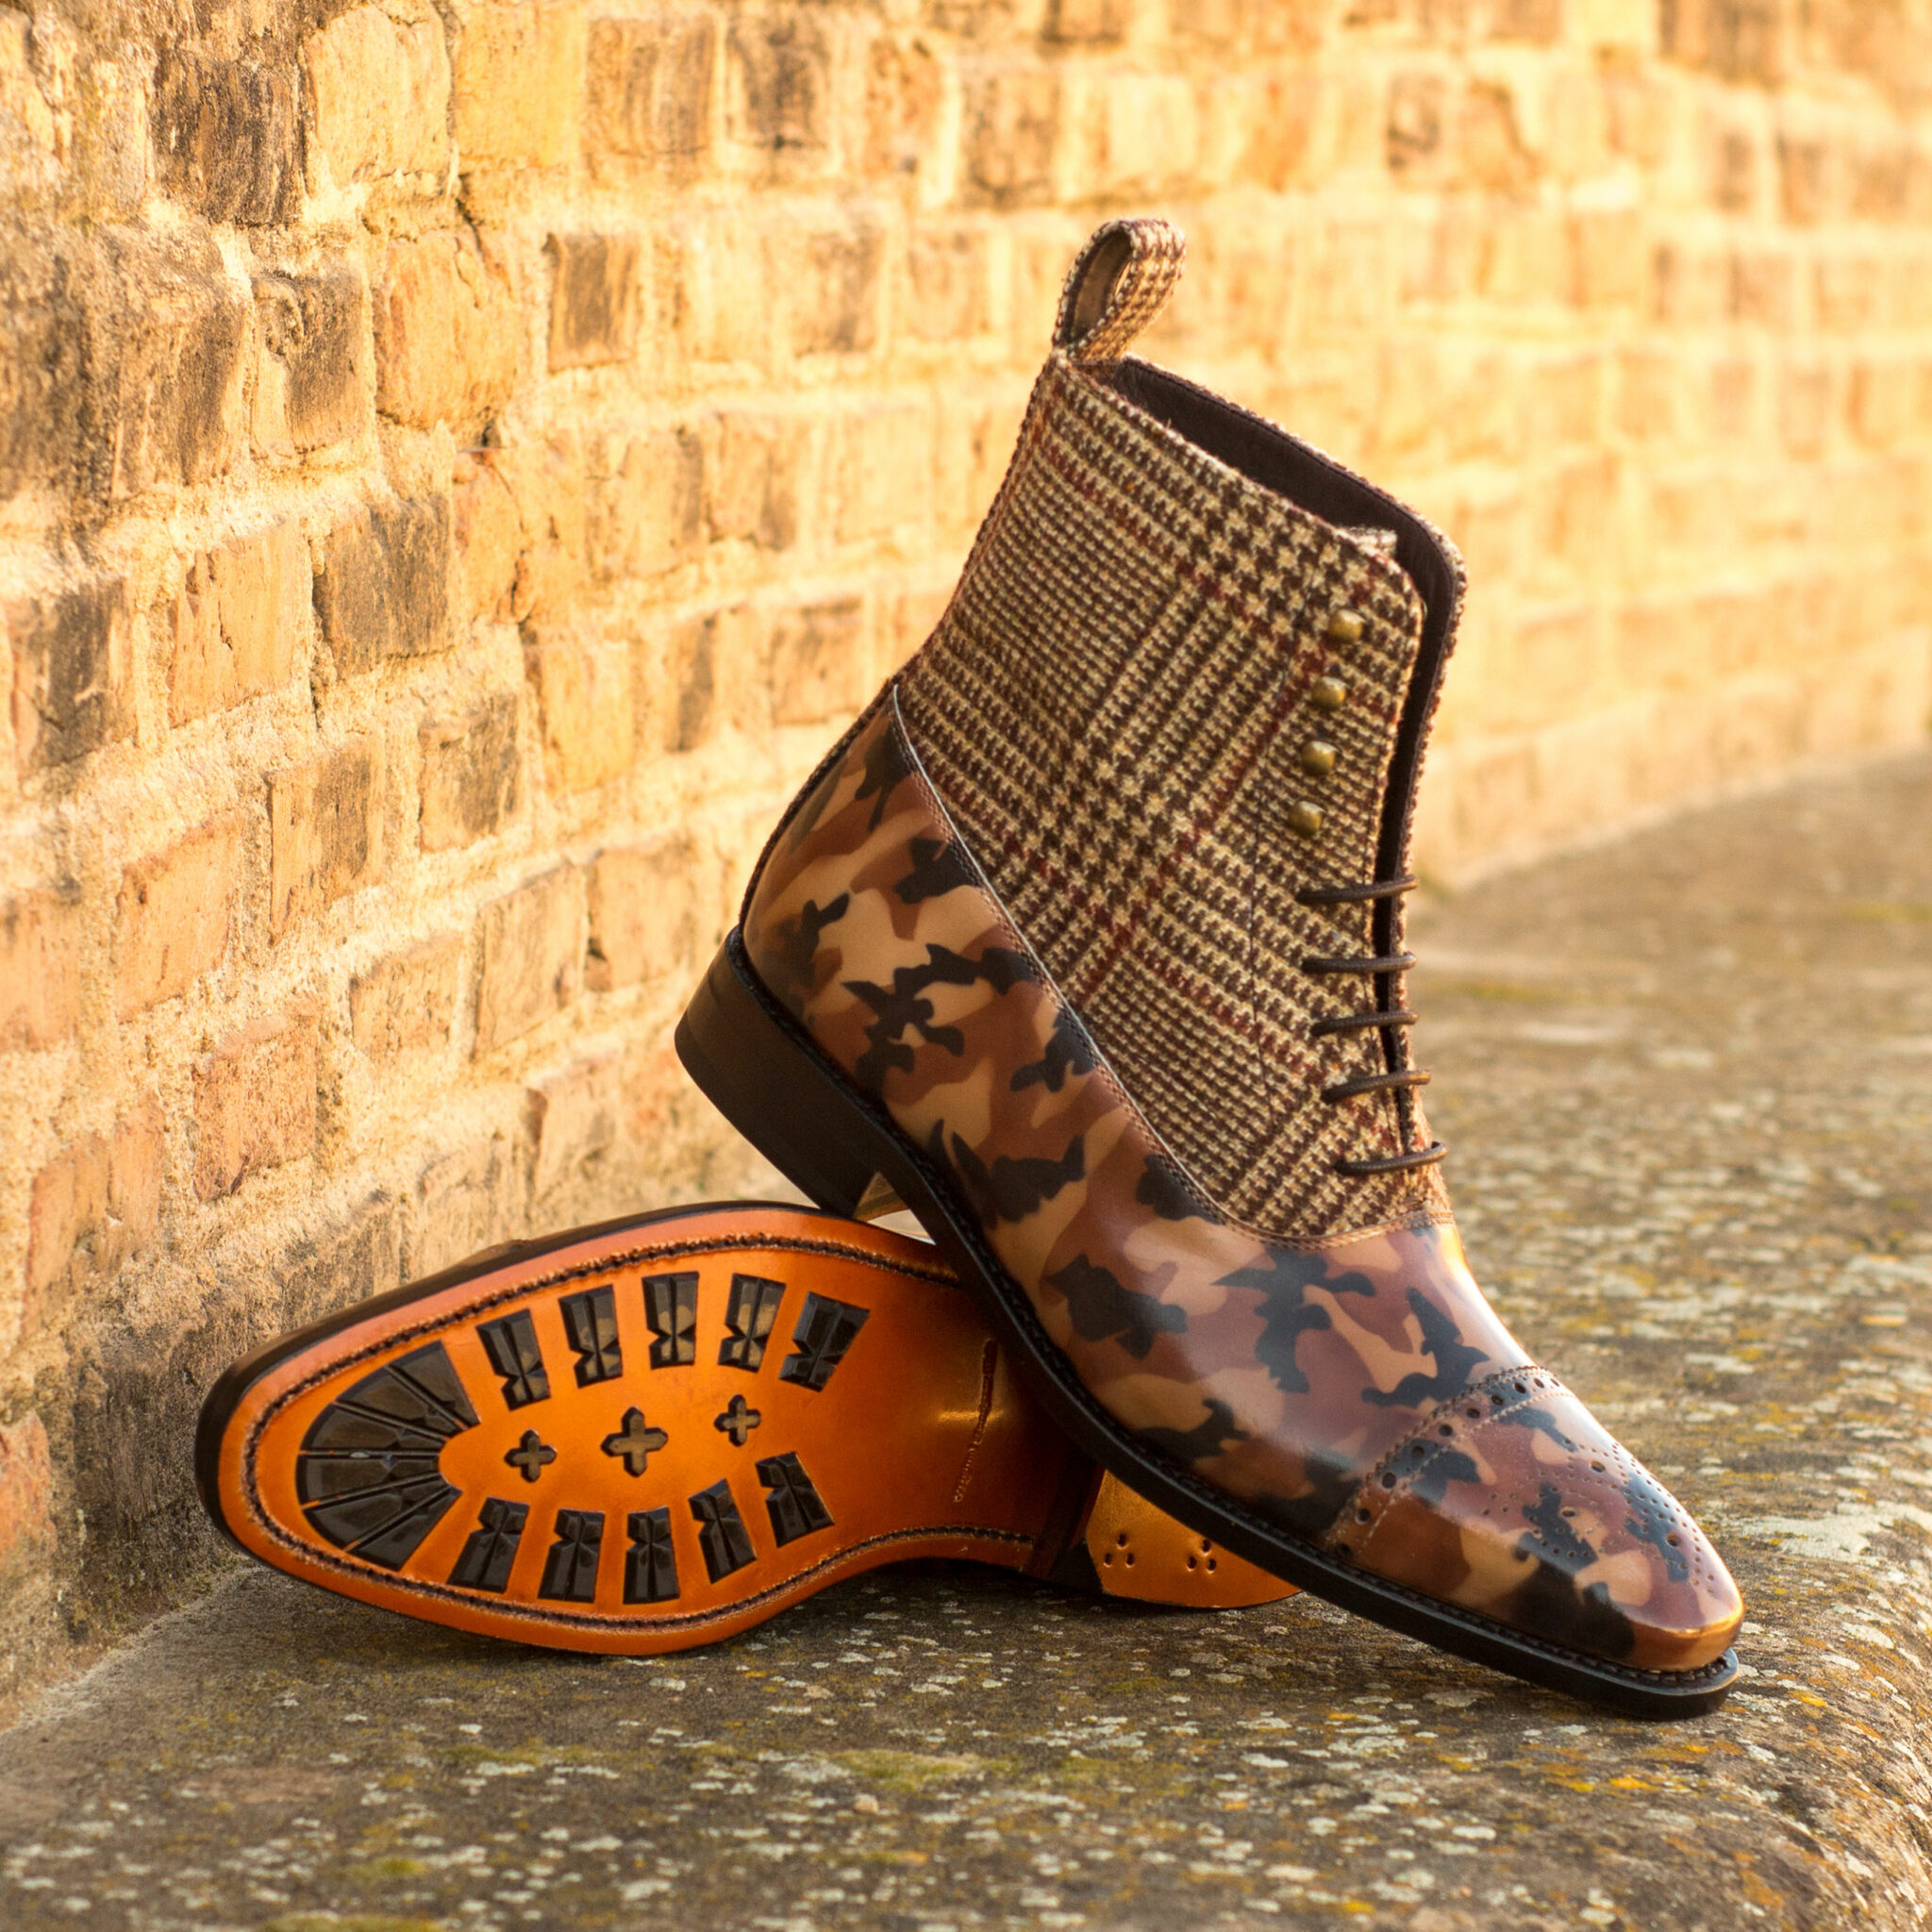 Balmoral boot tweed sartorial + brown camo patina : 370€